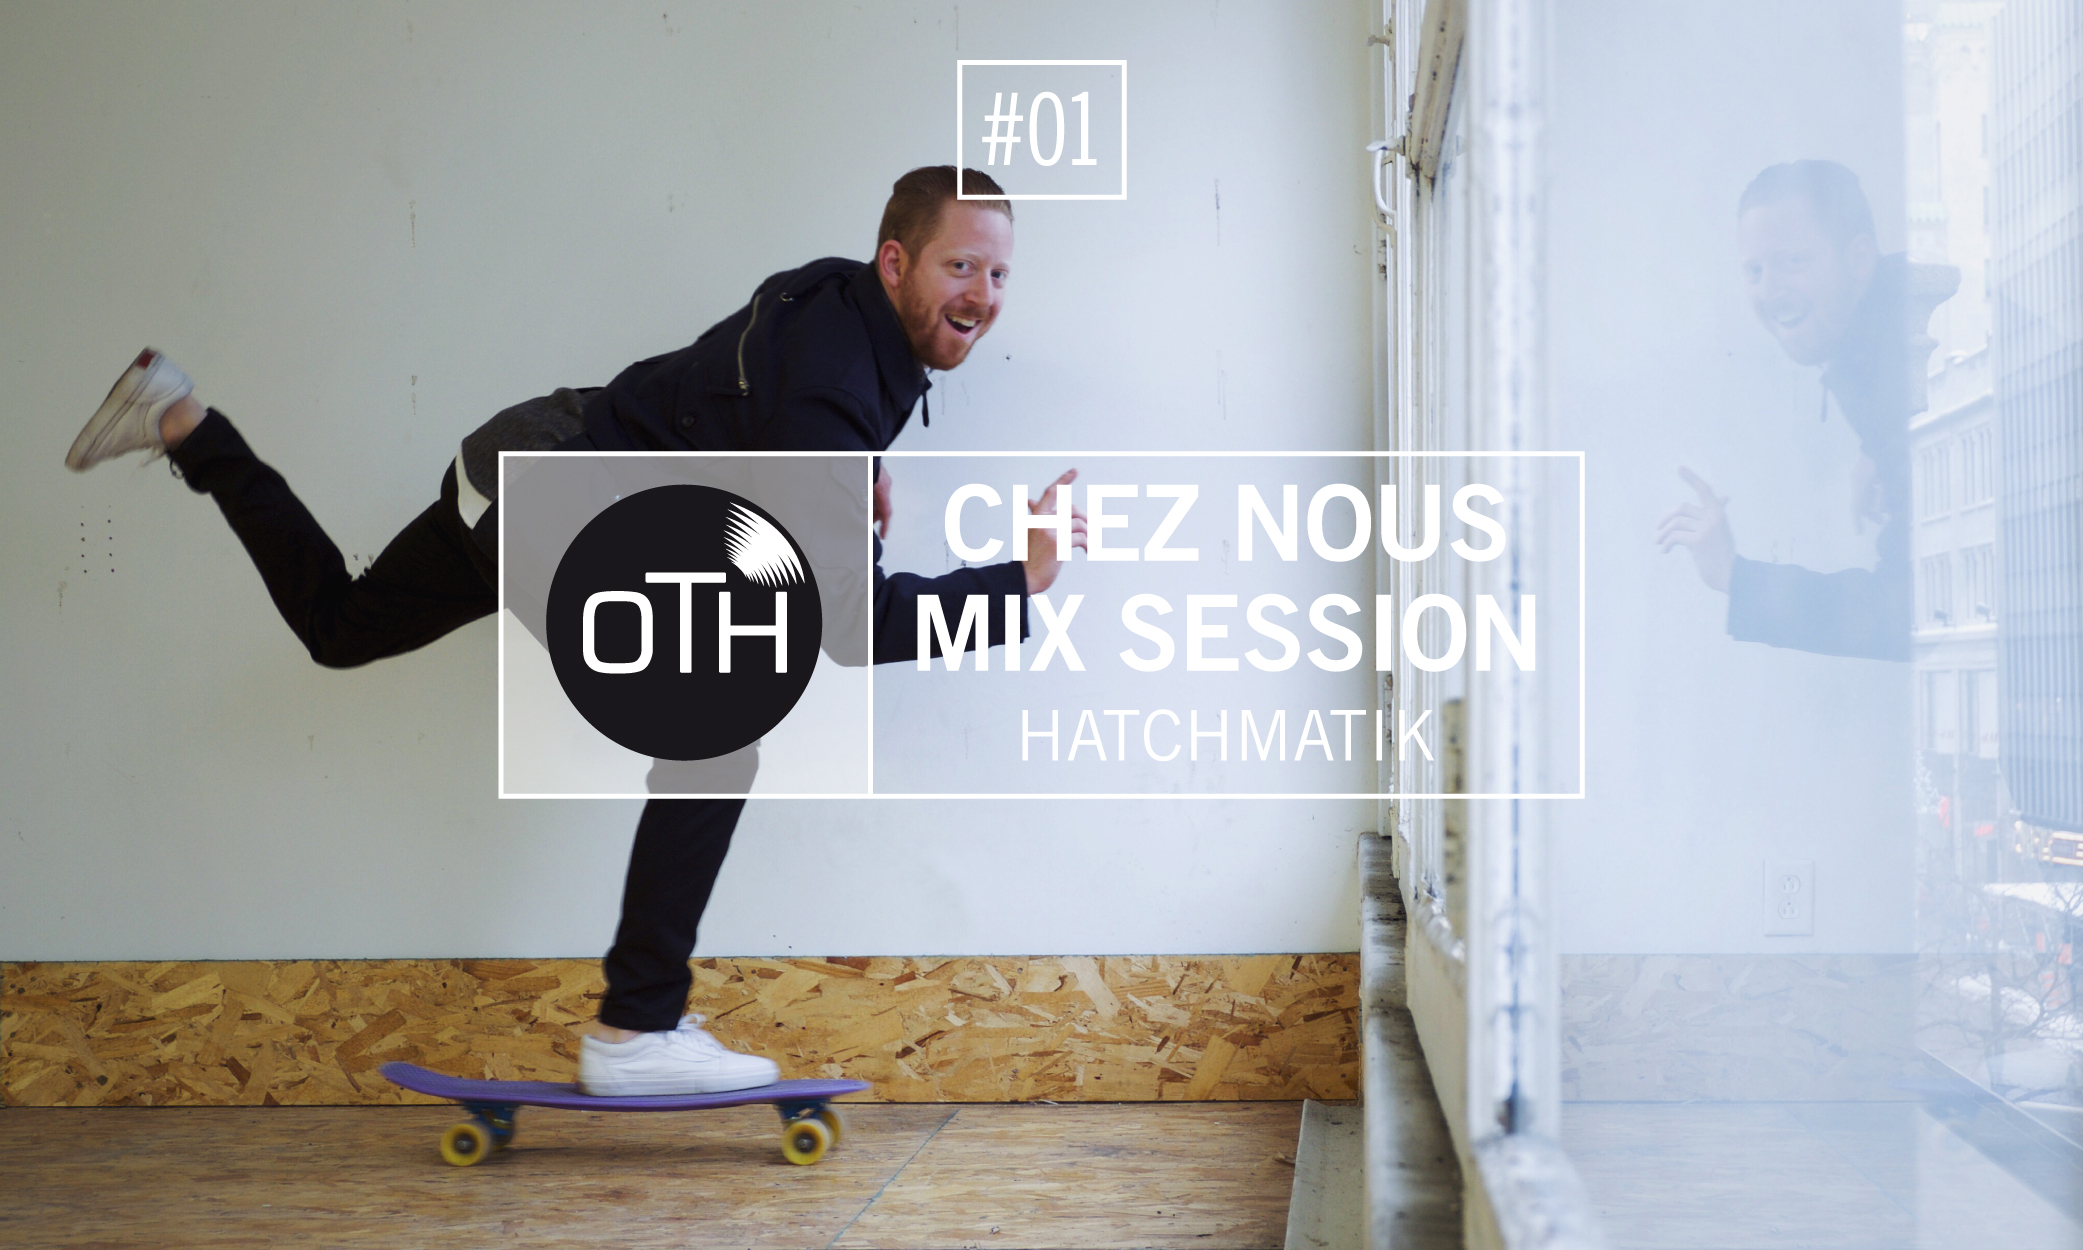 CHEZ NOUS MIX SESSION #01 OTH HATCHMATIK